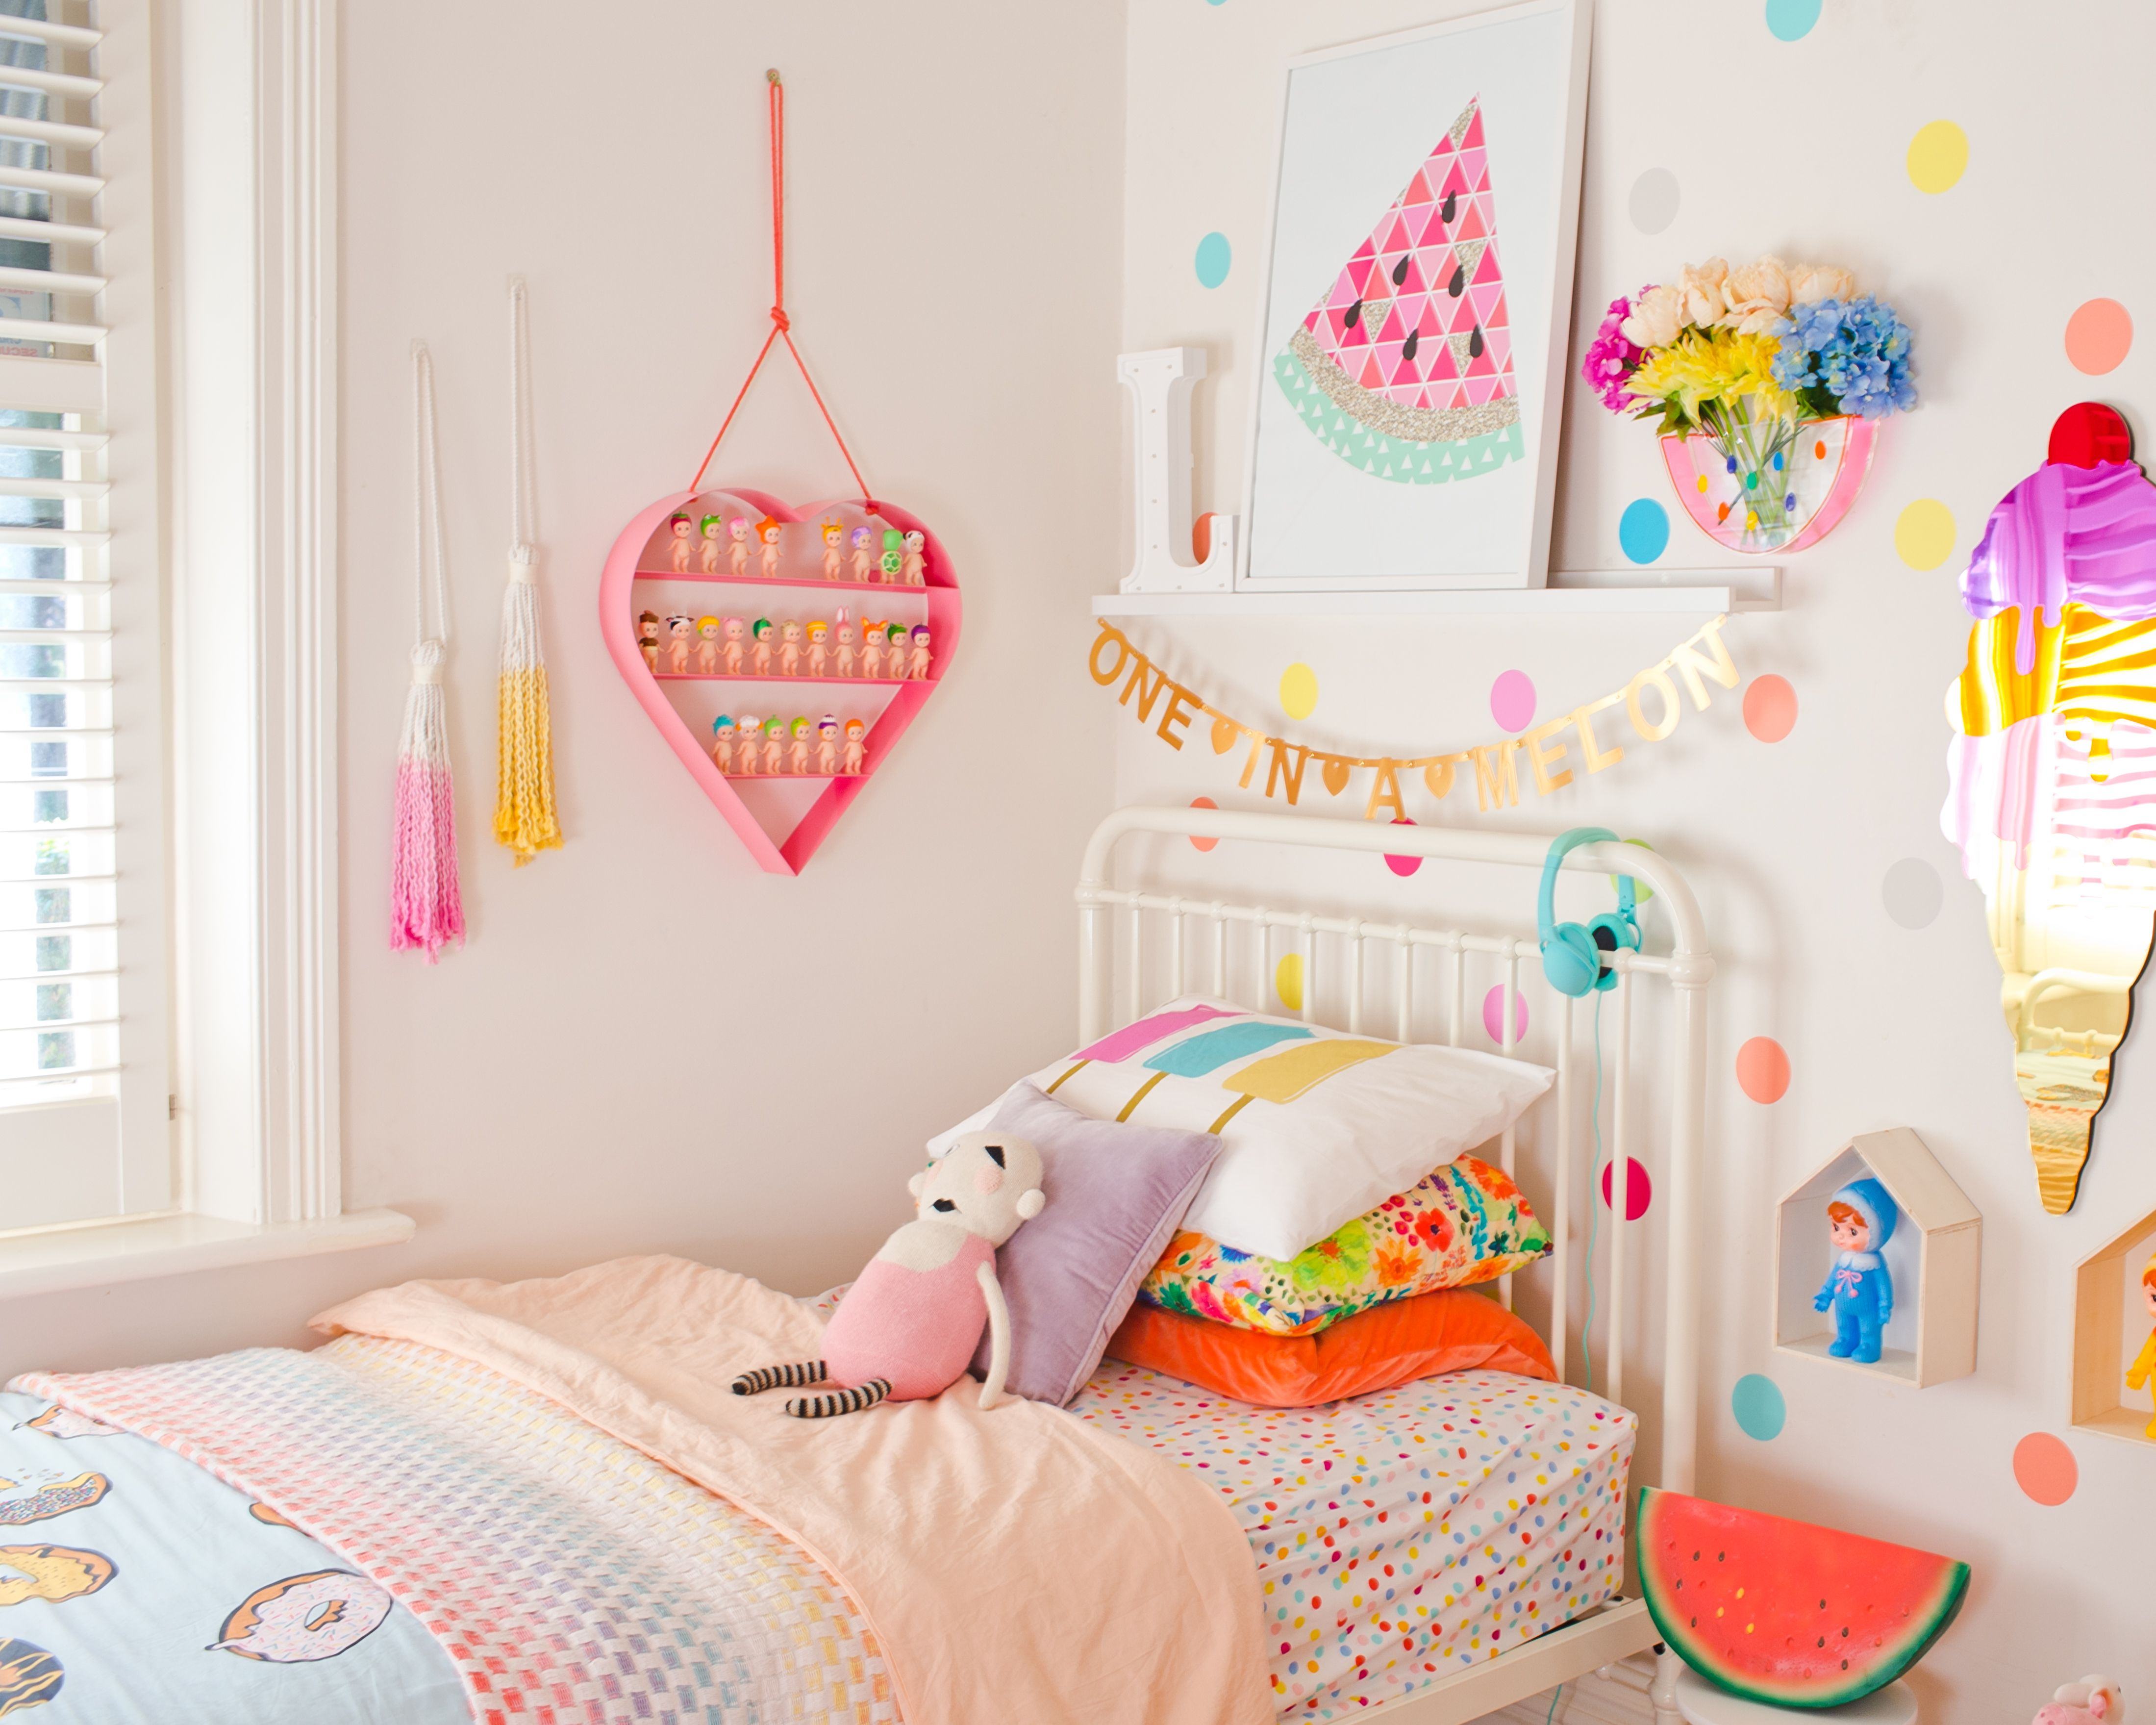 Pin On Kid Rooms: Lily's Incy Interior's Rainbow Room